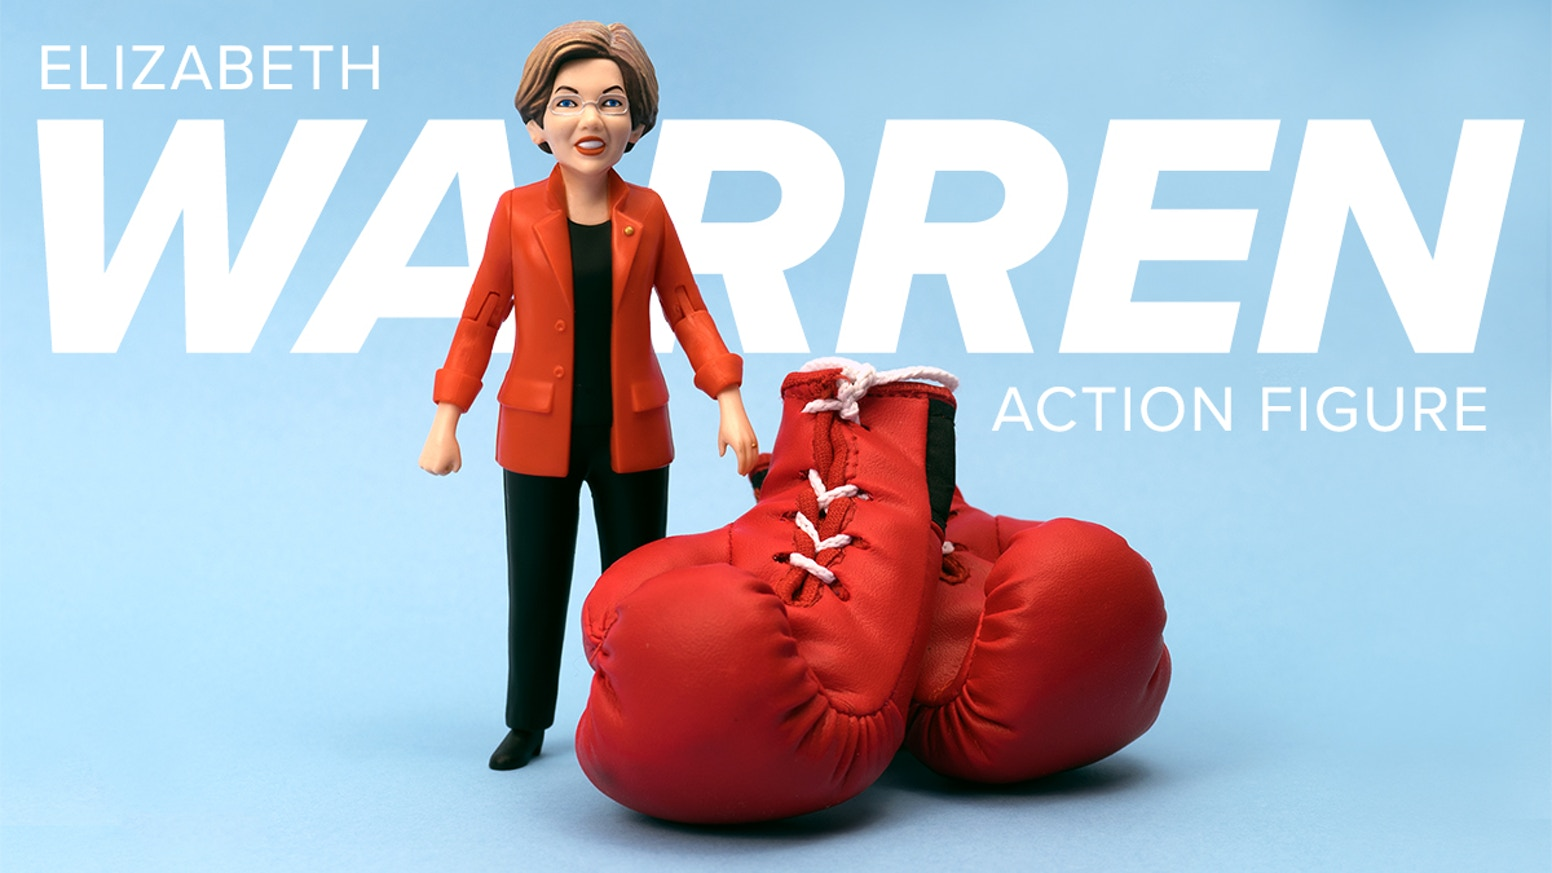 Let's turn Elizabeth Warren into an action figure that can bring the fight to the Right!